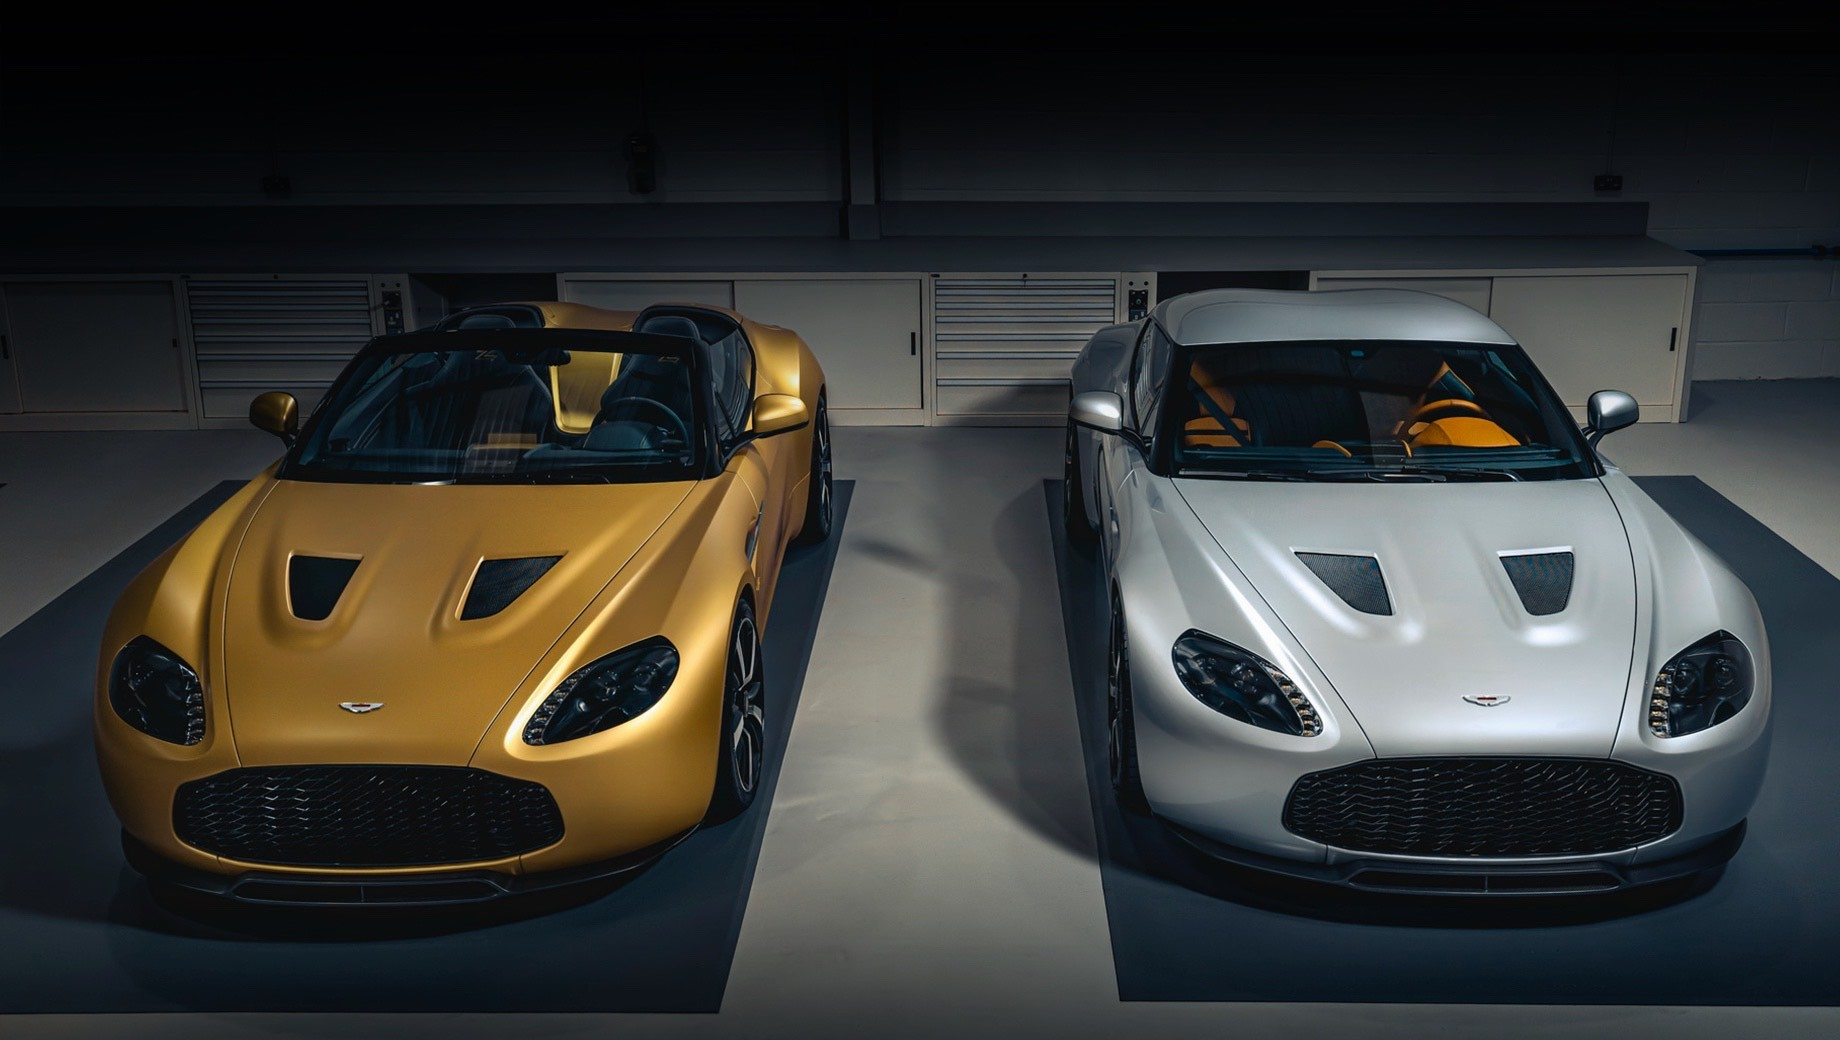 The opulent Aston Martin Vantage V12 went out of production a few years ago, but nothing can stop tuners from customizing the available vehicles. The Zagato Heritage Twins by R-Reforged edition will include only 19 coupe-roadster pairs, and the first pair just went to Andrea and Marelle Zagato.